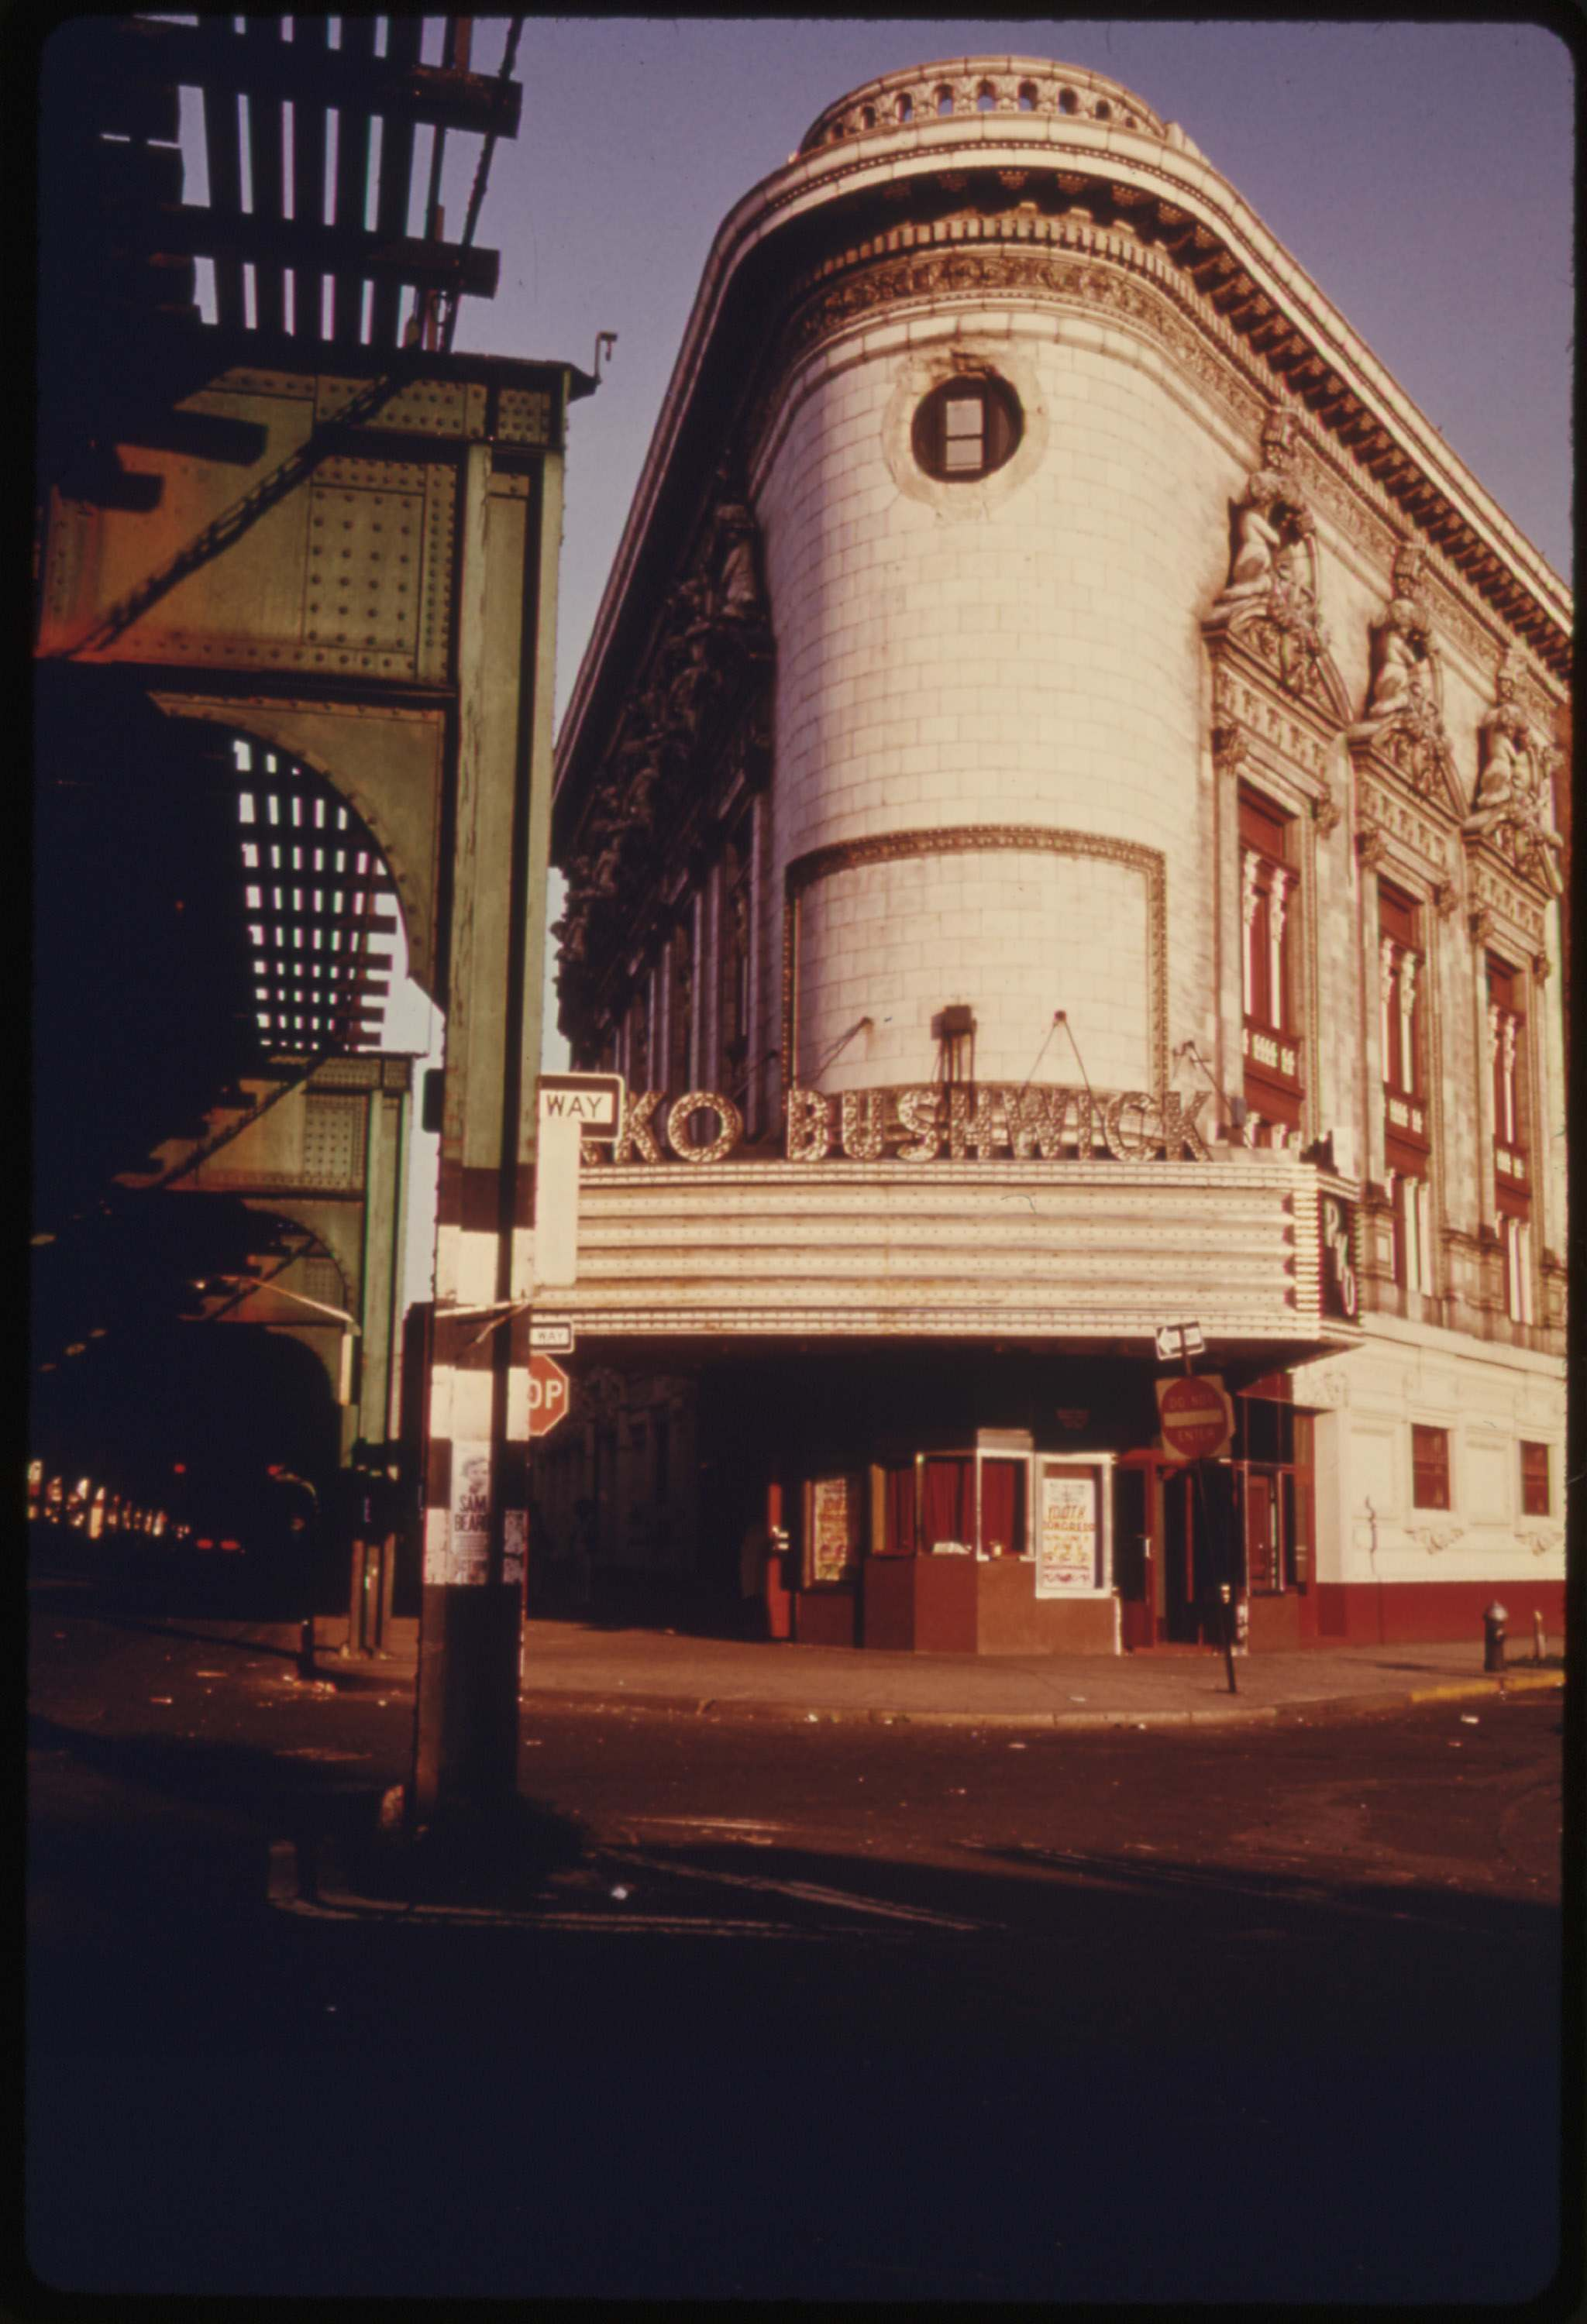 RKO Bushwick Theatre in Brooklyn, July 1974. Documerica: Danny Lyon's Photos of New York City in the Summer of 1974